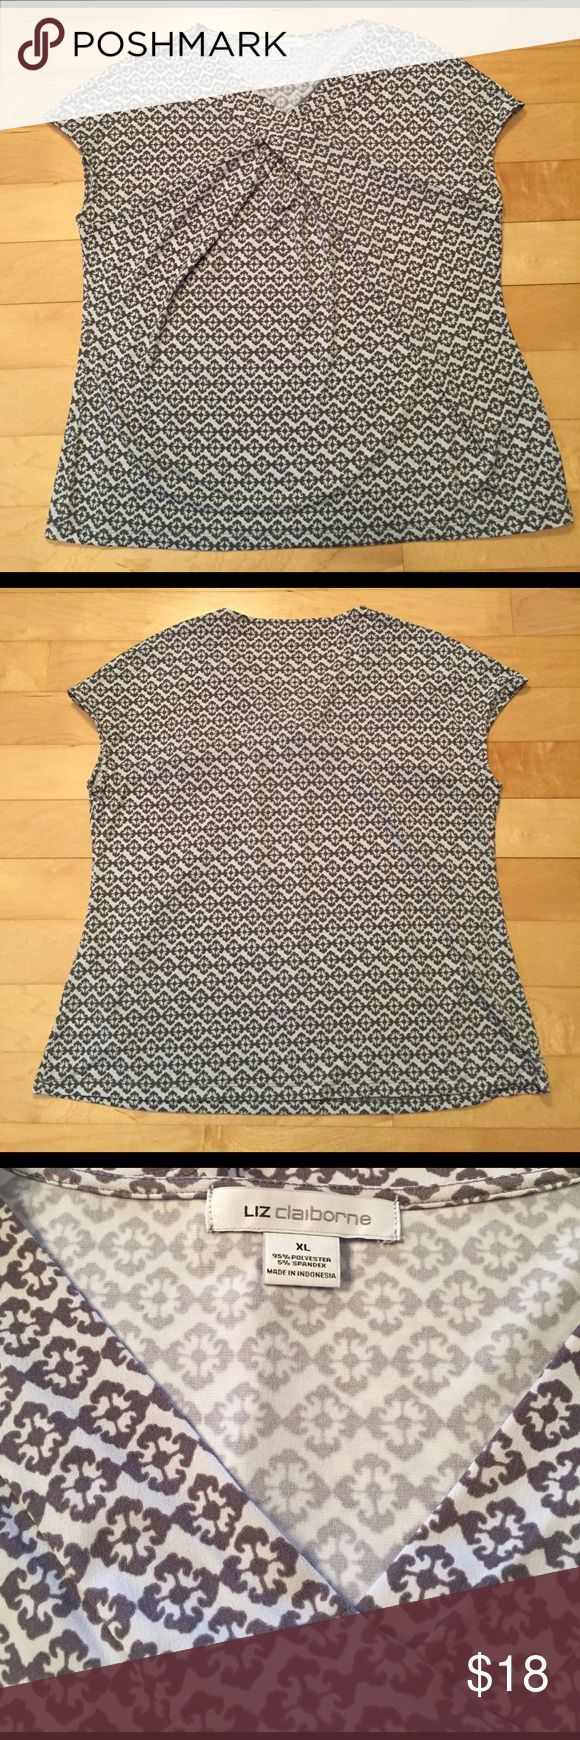 Liz Claiborne Top Super cute and perfect for work or with jeans - stylish details - great condition Liz Claiborne Tops Blouses